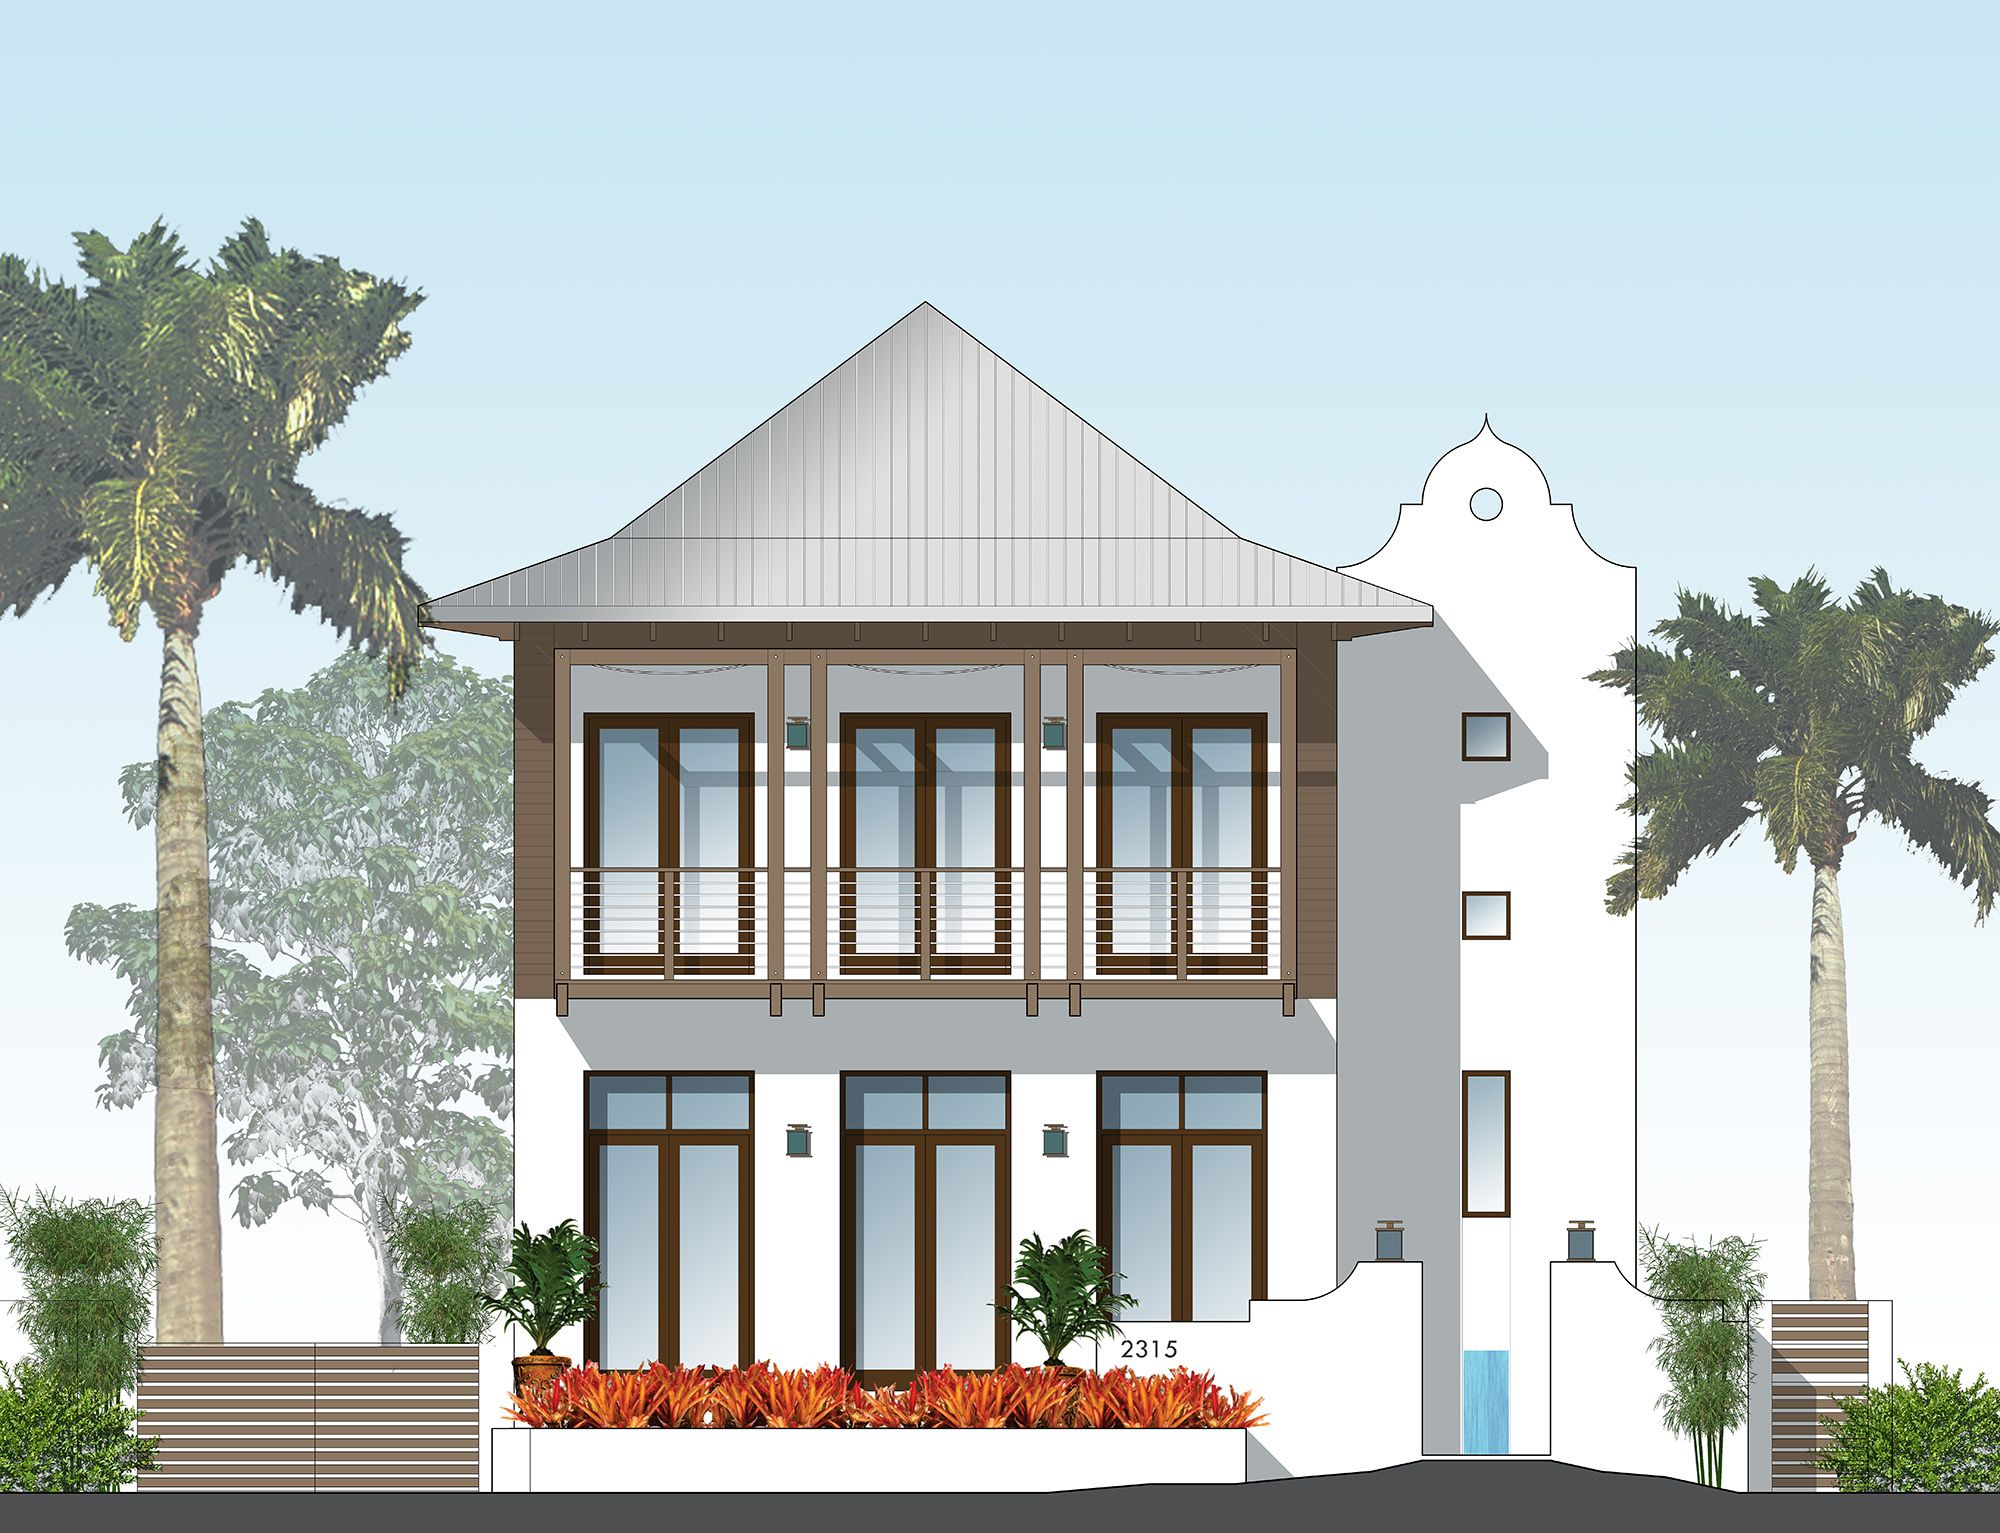 Front Elevation French : Front elevation french west indies architecture southern